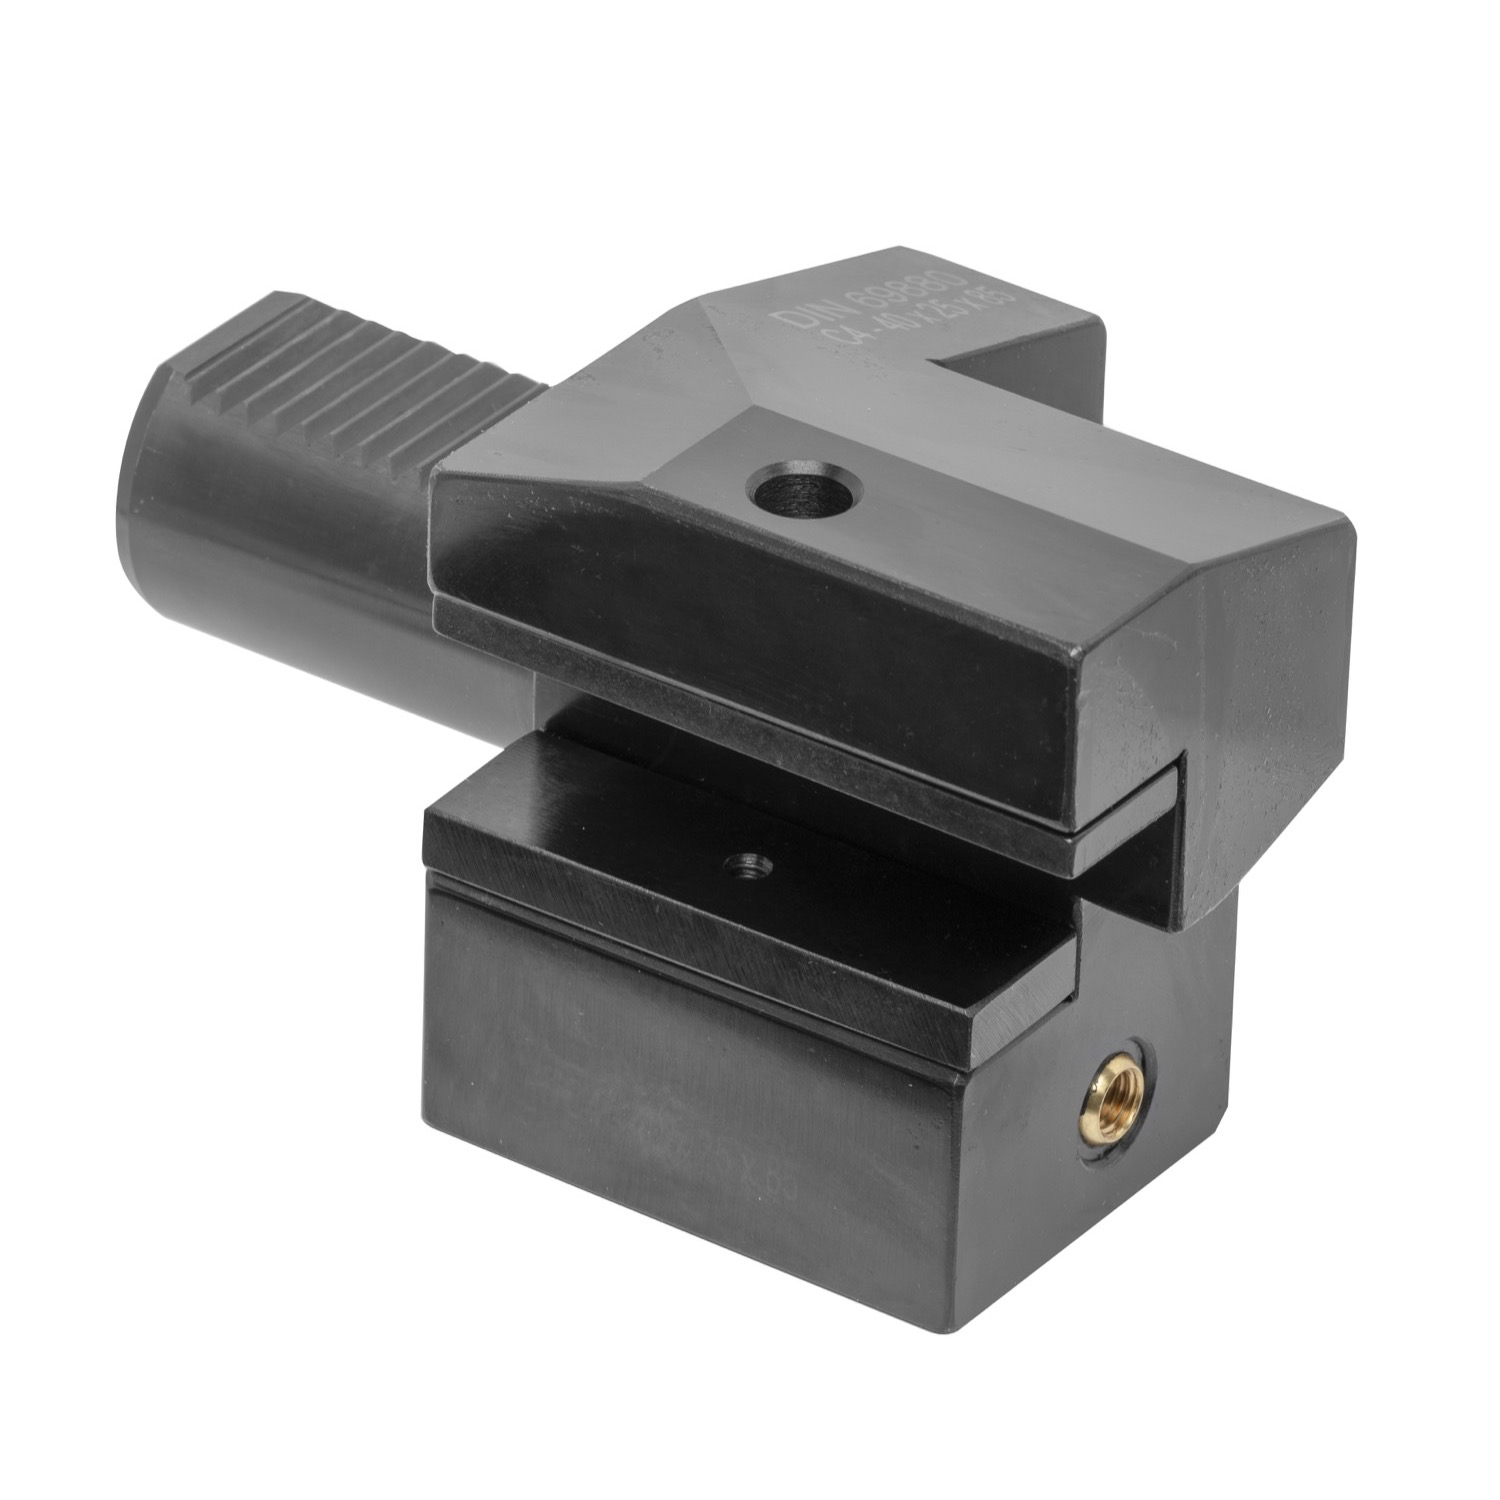 VDI C4 Axial Holders, Overhead Left Hand.